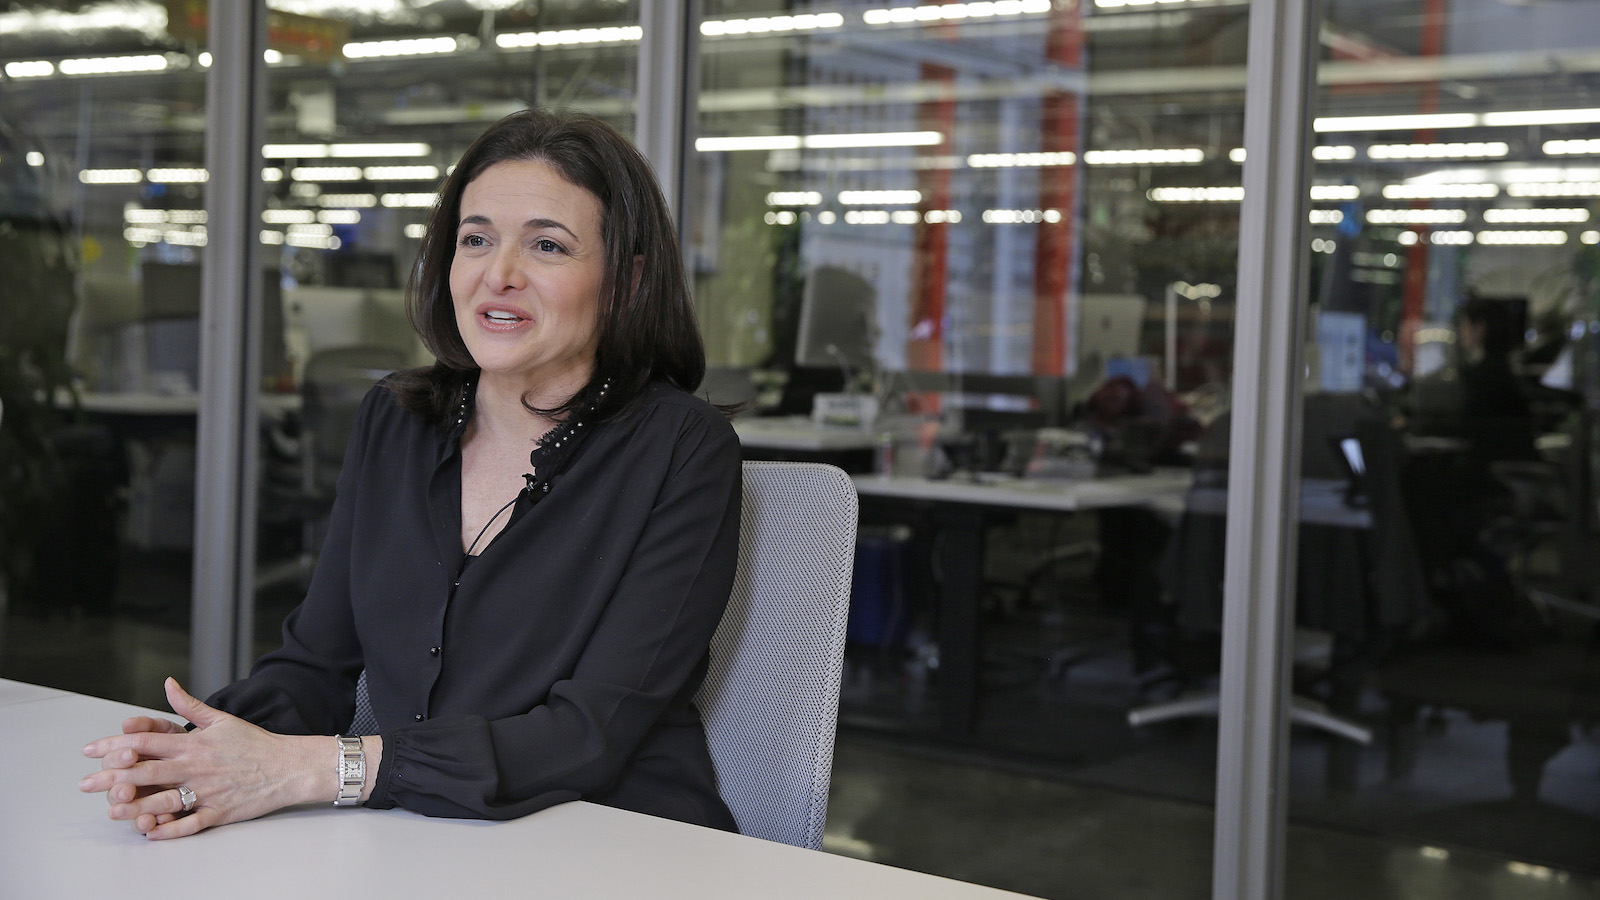 In this photo taken Tuesday Feb. 3, 2015, Facebook chief operating officer Sheryl Sandberg answers questions during an interview at Facebook headquarters in Menlo Park, Calif. A new Facebook and LinkedIn collaboration announced Friday, Feb. 6, 2015, seeks to boost the dwindling numbers of women studying engineering and computer science today, a field booming with lucrative Silicon Valley jobs long dominated by men.